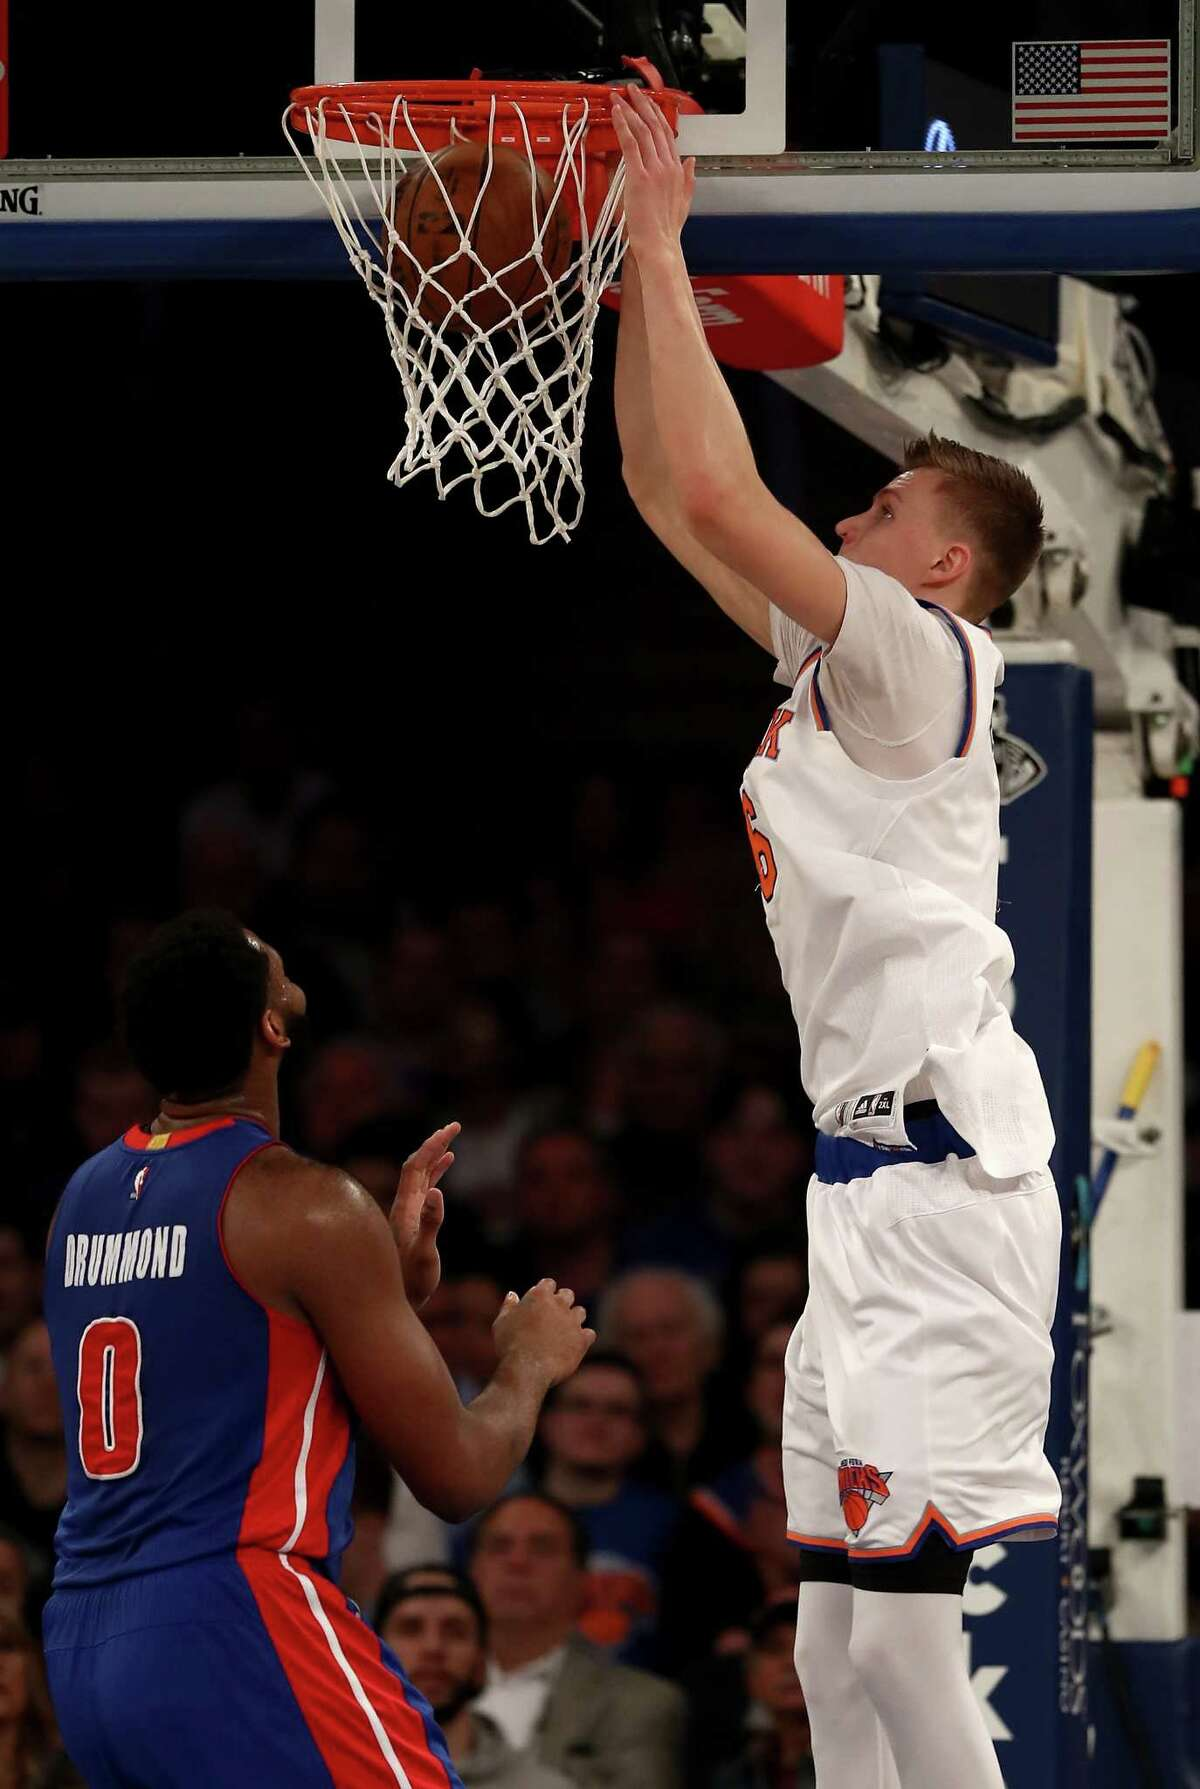 NEW YORK, NY - MARCH 27: Kristaps Porzingis #6 of the New York Knicks dunks as Andre Drummond #0 of the Detroit Pistons defends at Madison Square Garden on March 27, 2017 in New York City. NOTE TO USER: User expressly acknowledges and agrees that, by downloading and or using this Photograph, user is consenting to the terms and conditions of the Getty Images License Agreement (Photo by Elsa/Getty Images) ORG XMIT: 662357335